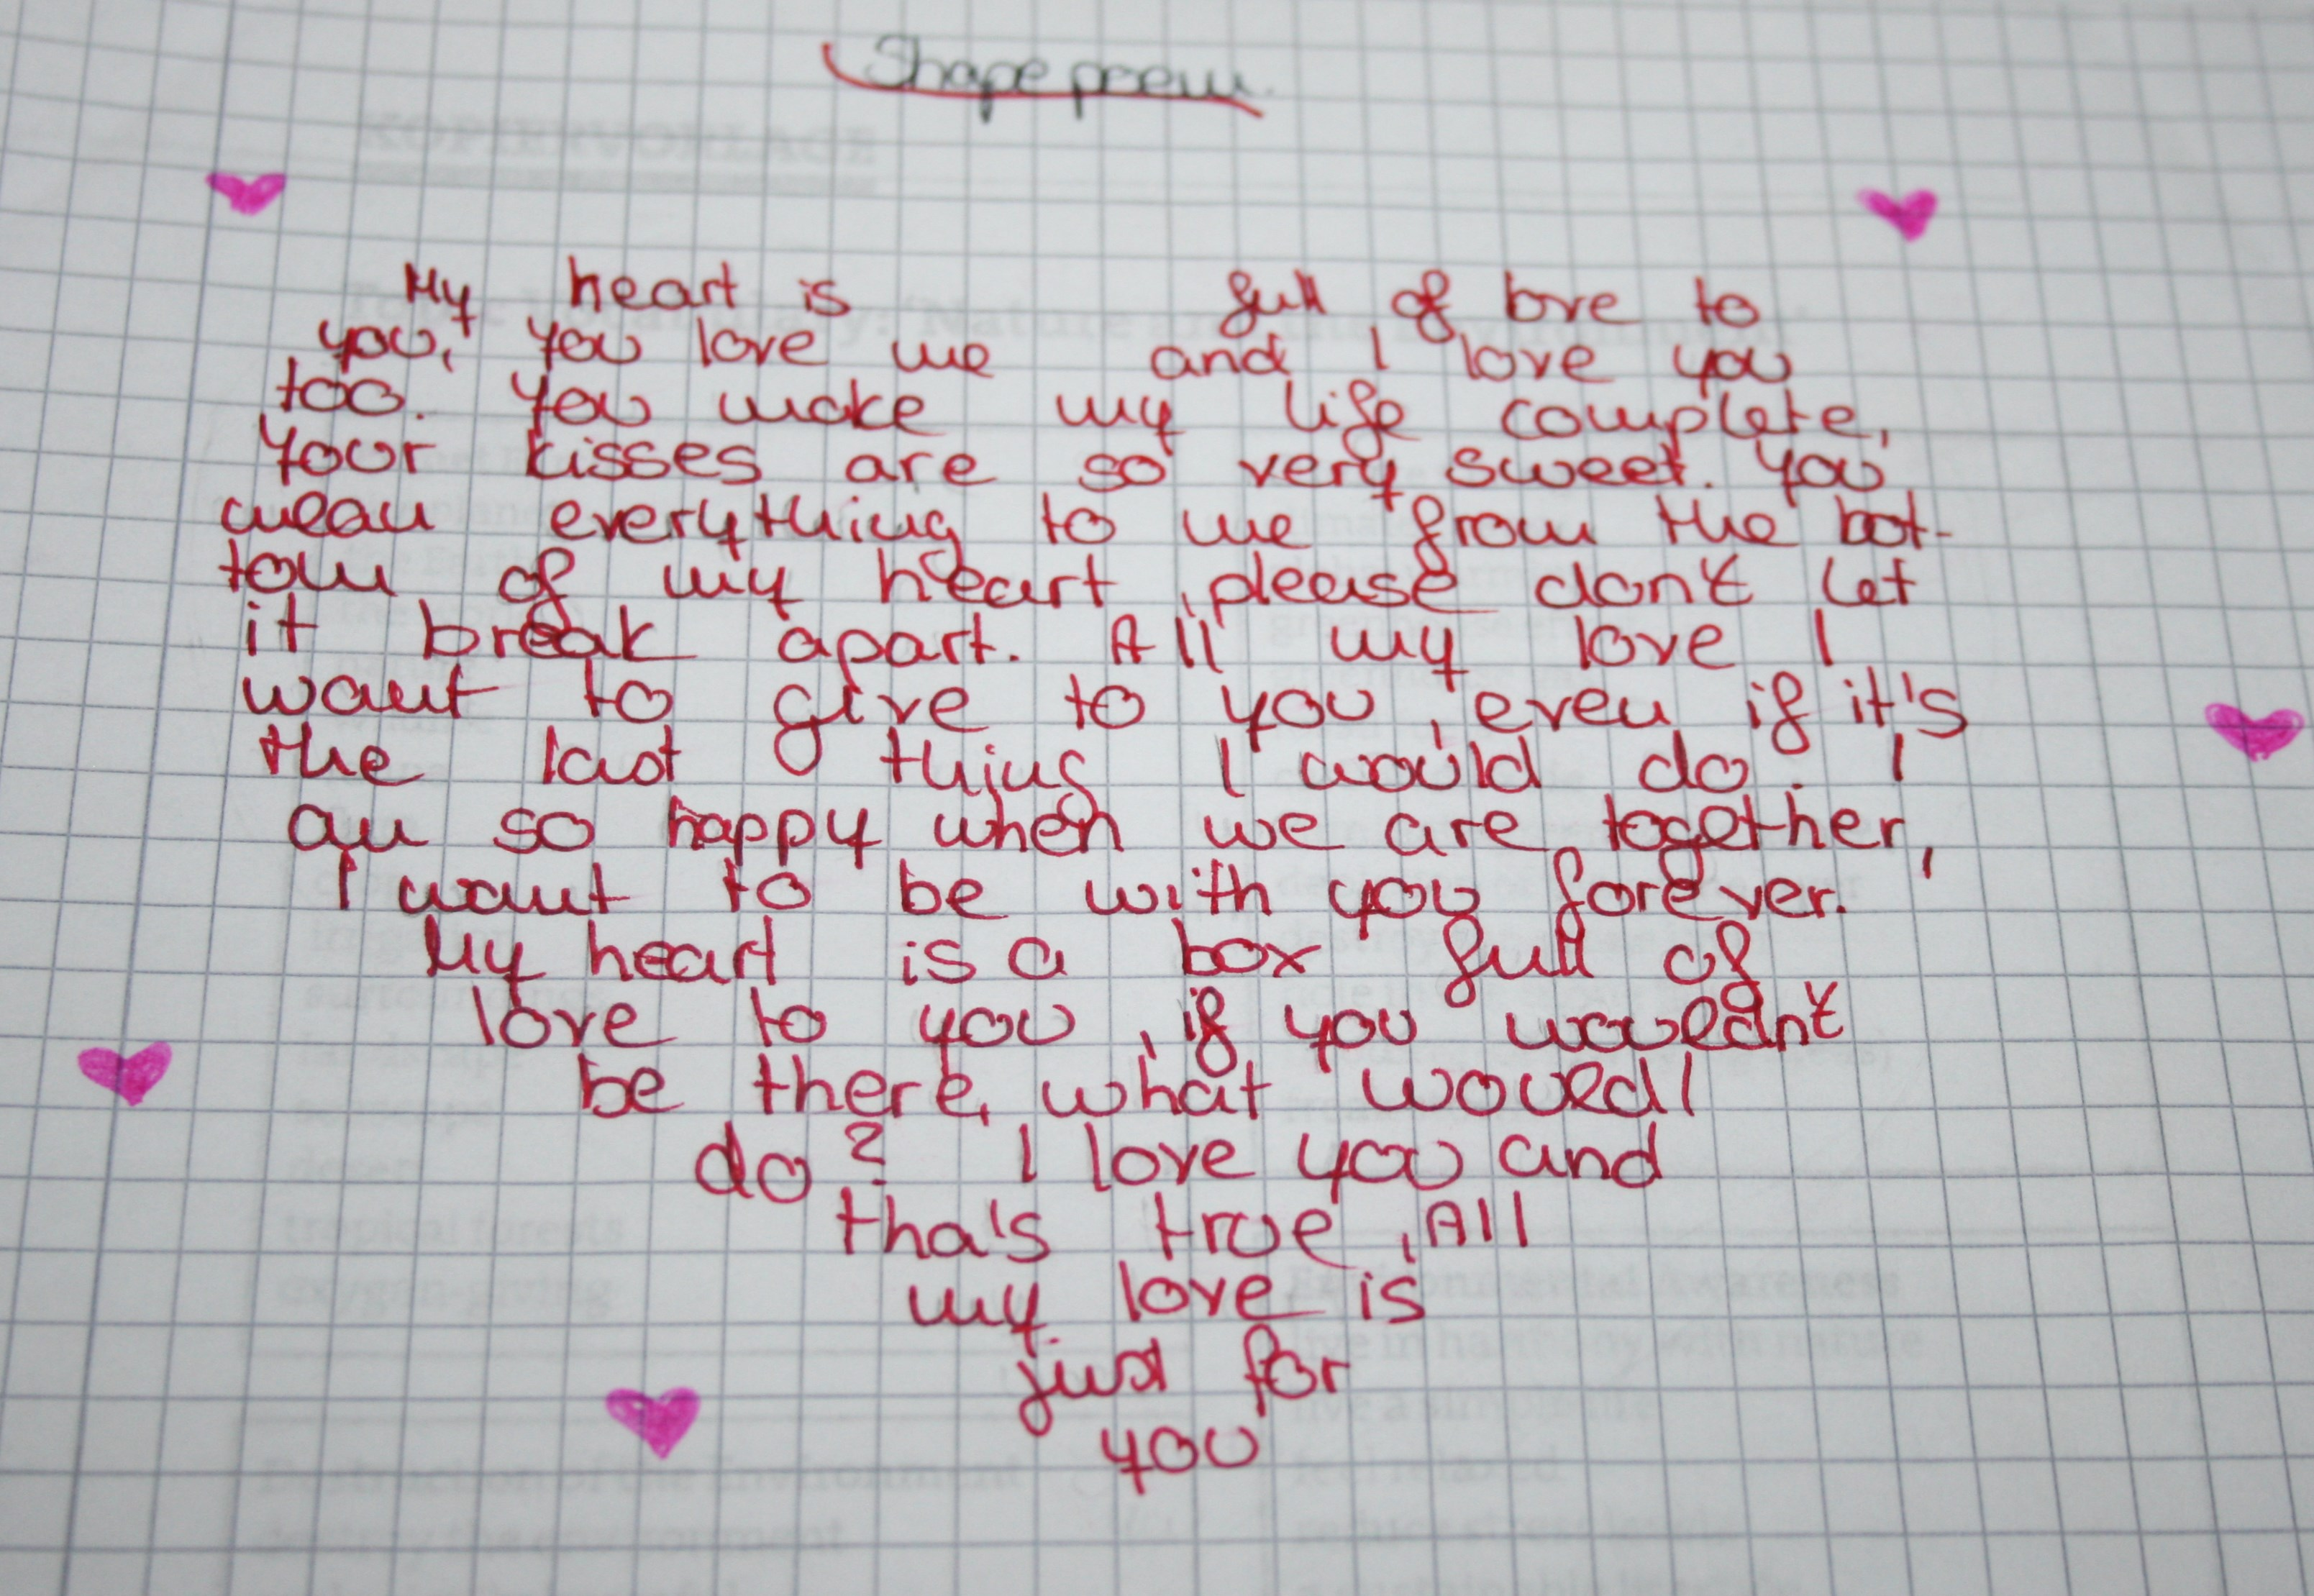 A little poem about love | The Undateable Girl's Diary